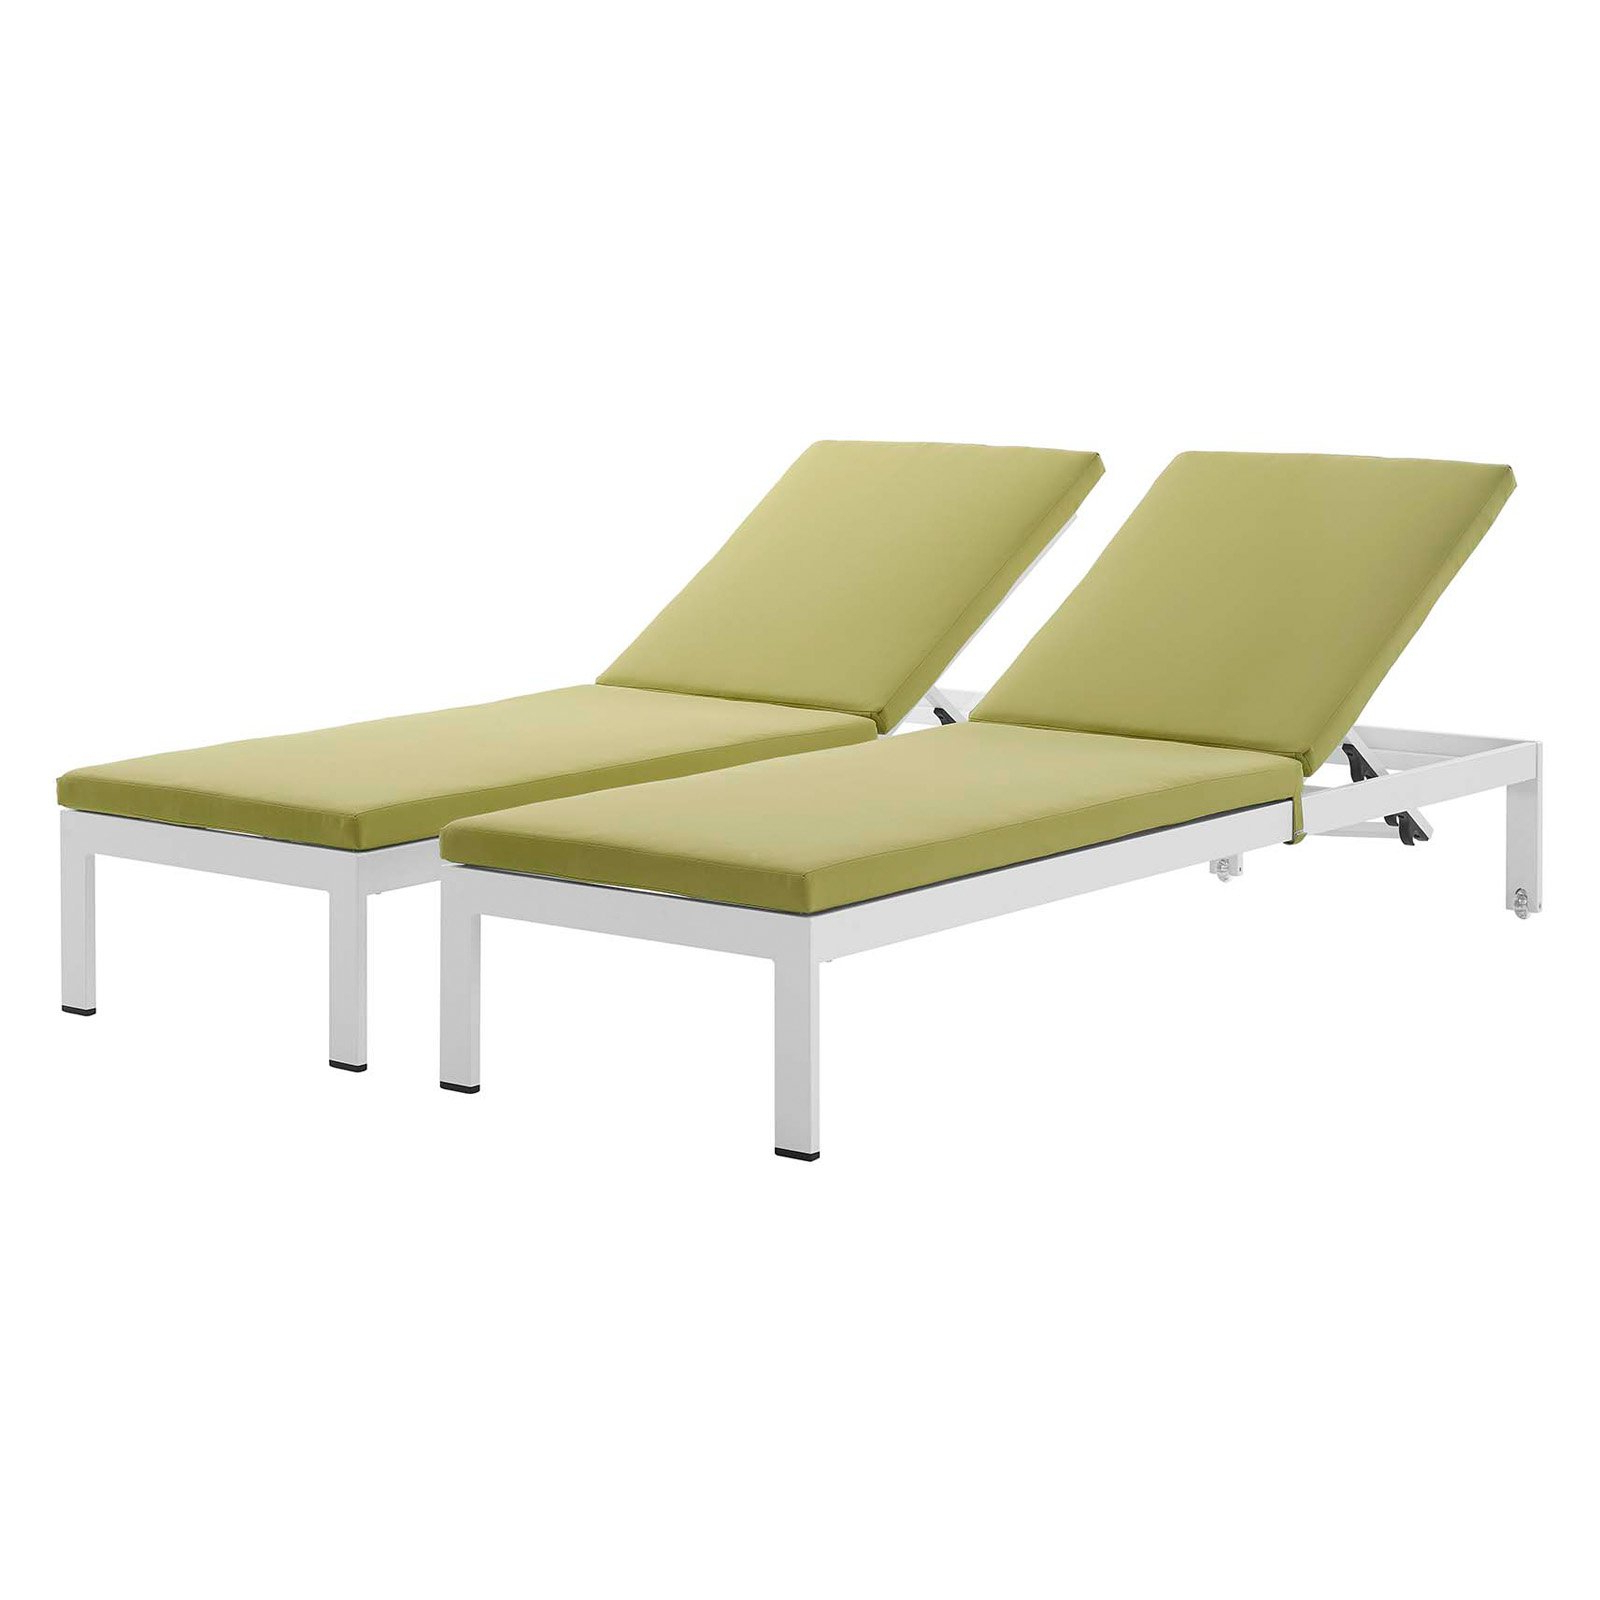 Well Liked Modway Shore Aluminum Outdoor Patio Chaise Lounge Chair Inside Shore Aluminum Outdoor Chaise Lounges (Gallery 5 of 25)